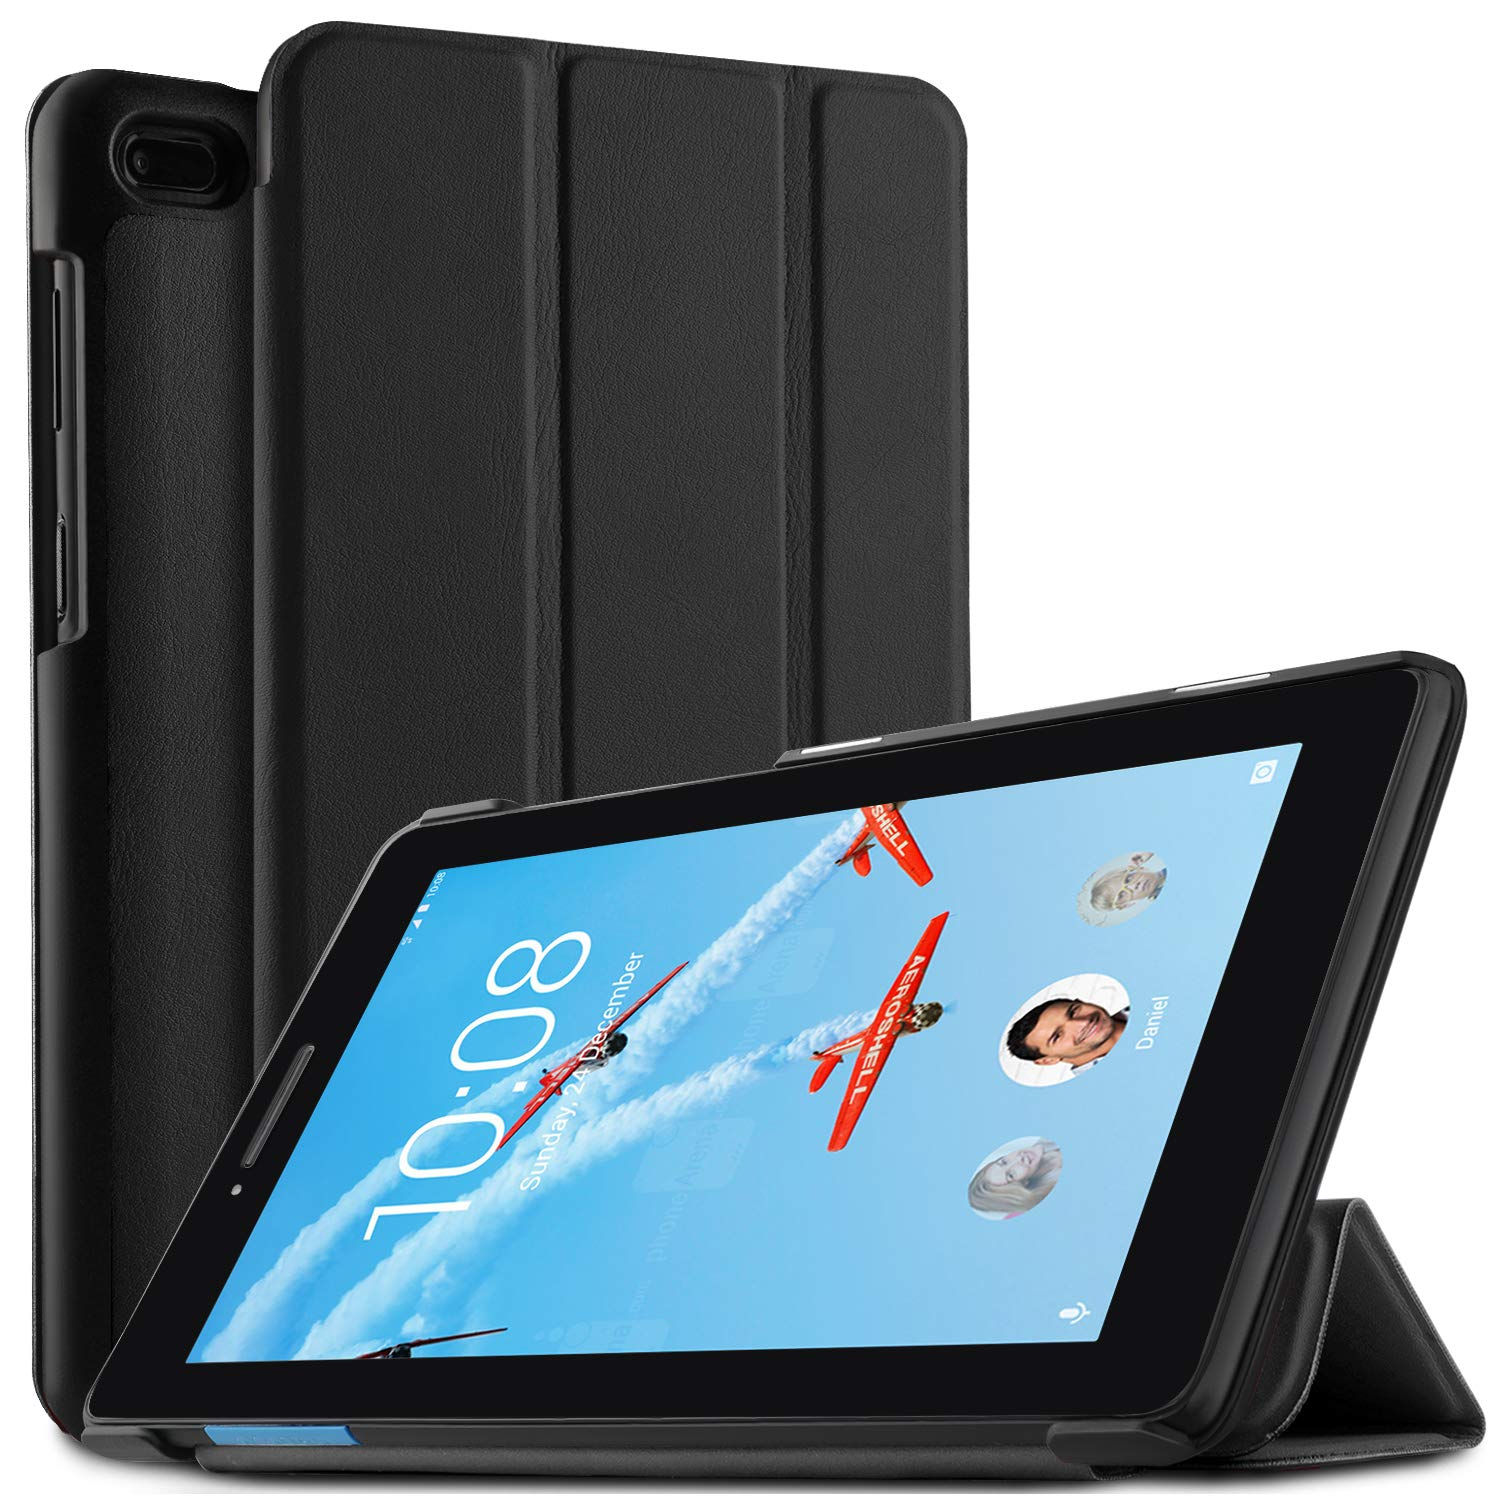 new arrival be2d0 cce0f IVSO Case for Lenovo Tab 7 Essential Tablet, Ultra Lightweight Slim Smart  Cover Case for Lenovo Tab 7 Essential/Lenovo Tab 4 7 Essential Tablet ...